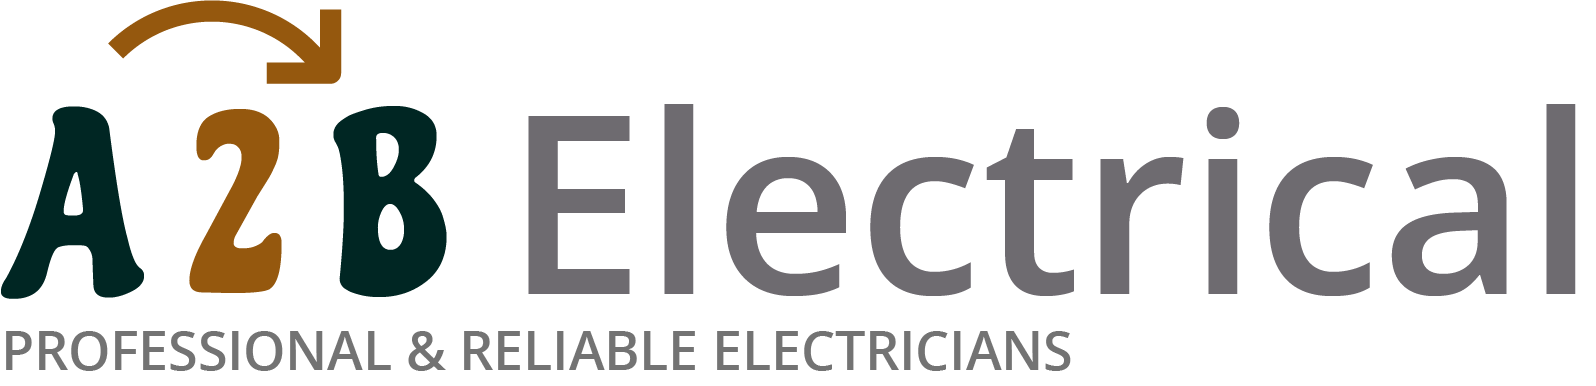 If you have electrical wiring problems in Southend, we can provide an electrician to have a look for you.